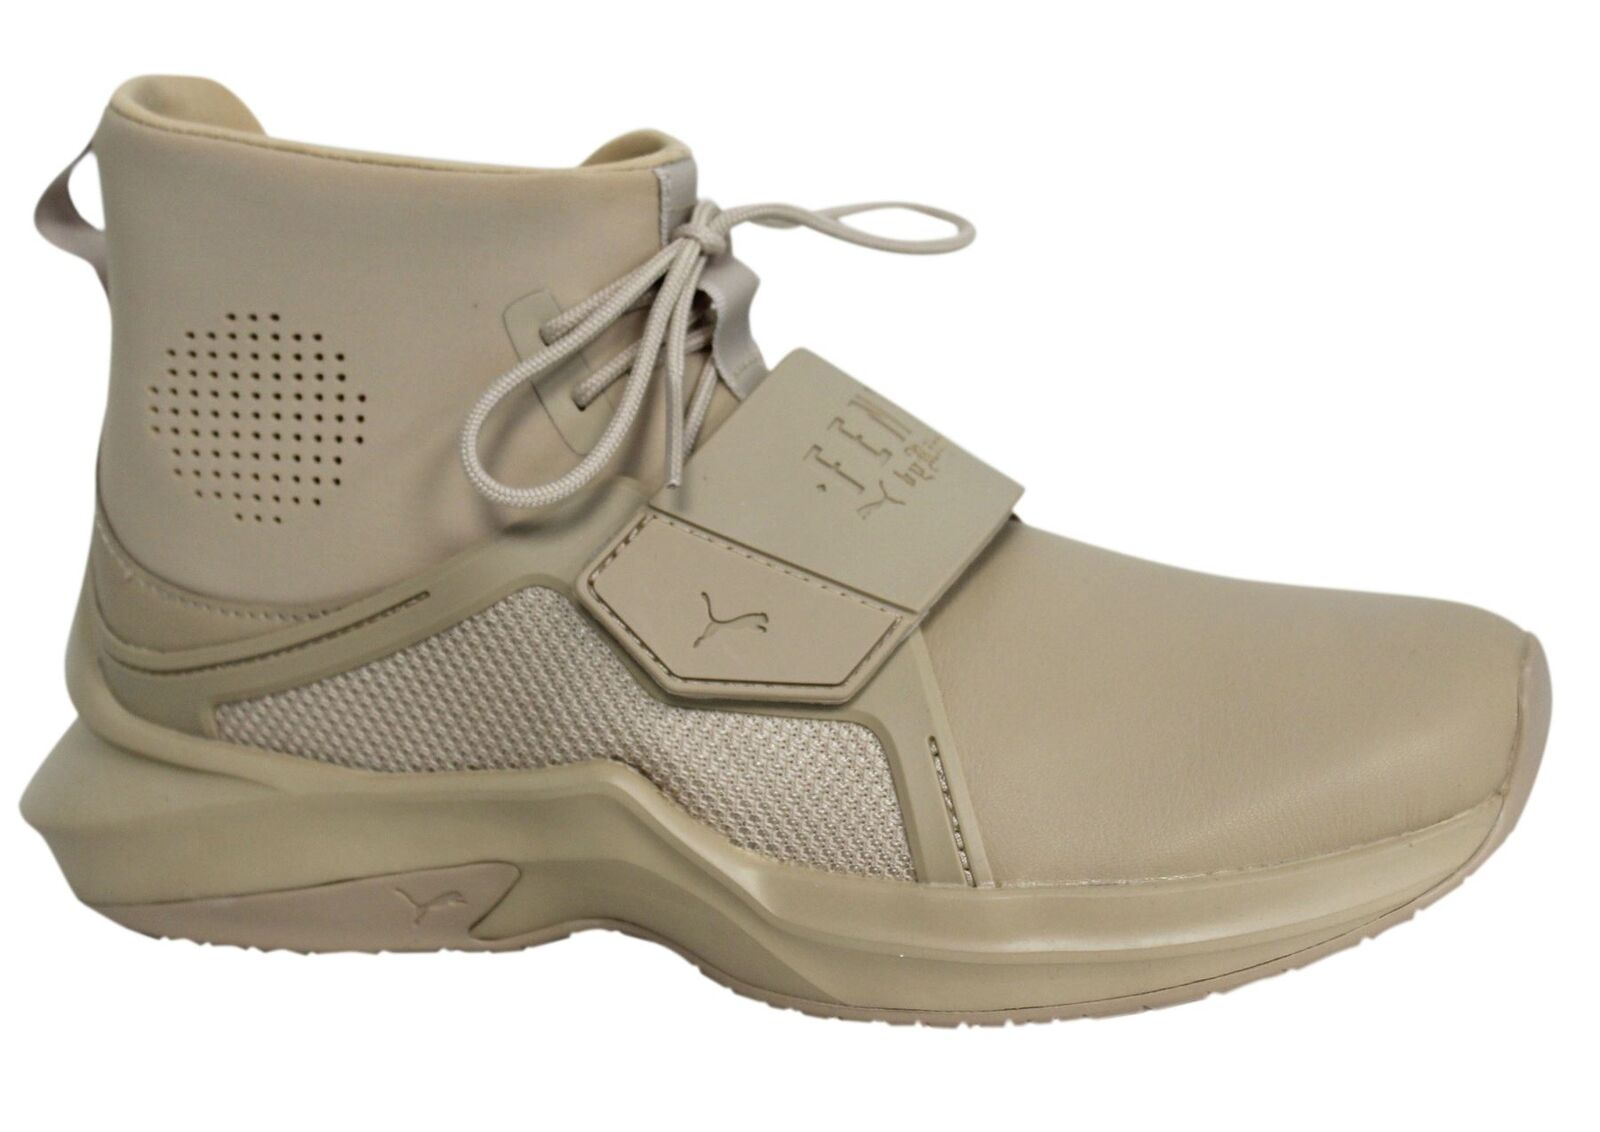 Puma Fenty By Womens Rihanna Sesame Leather Textile Womens By The Trainer 190398 03 P4 23e057